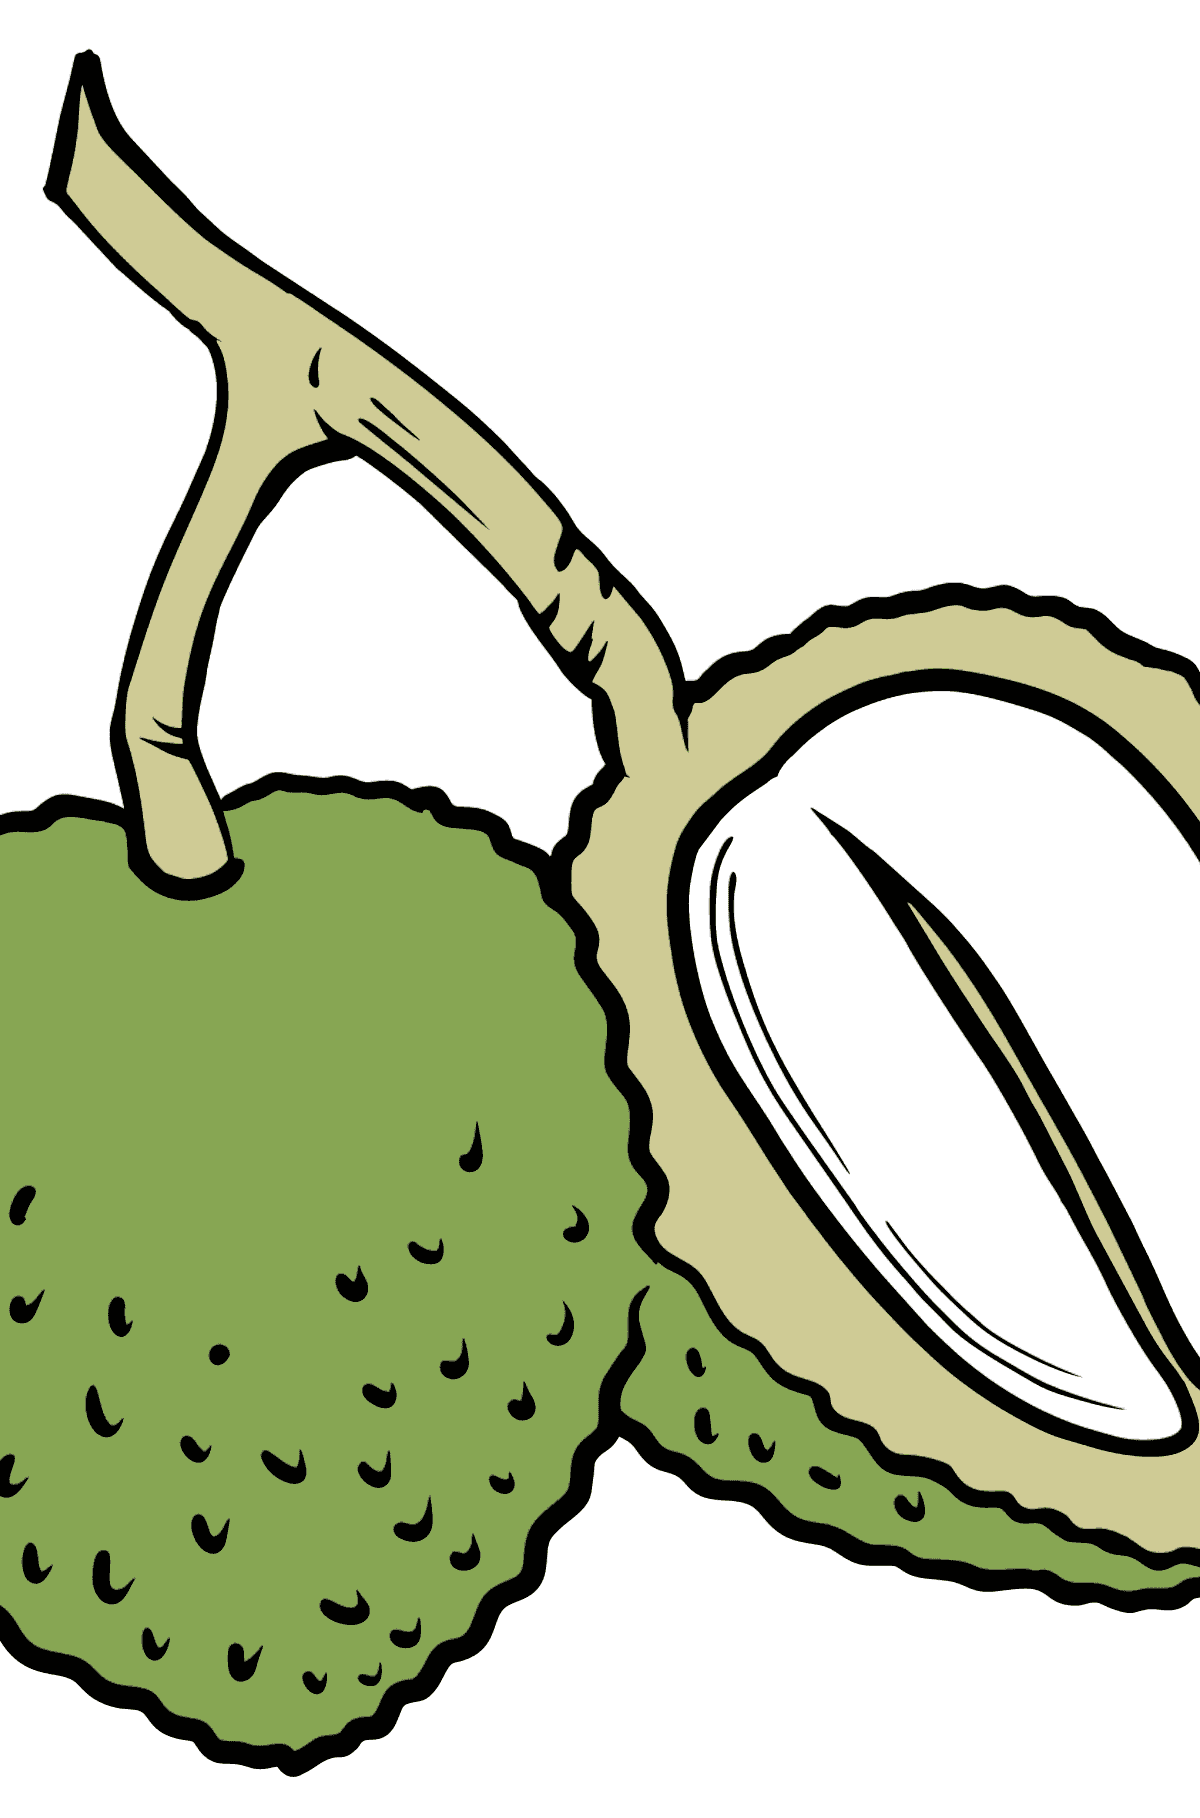 Durian coloring page - Coloring Pages for Kids